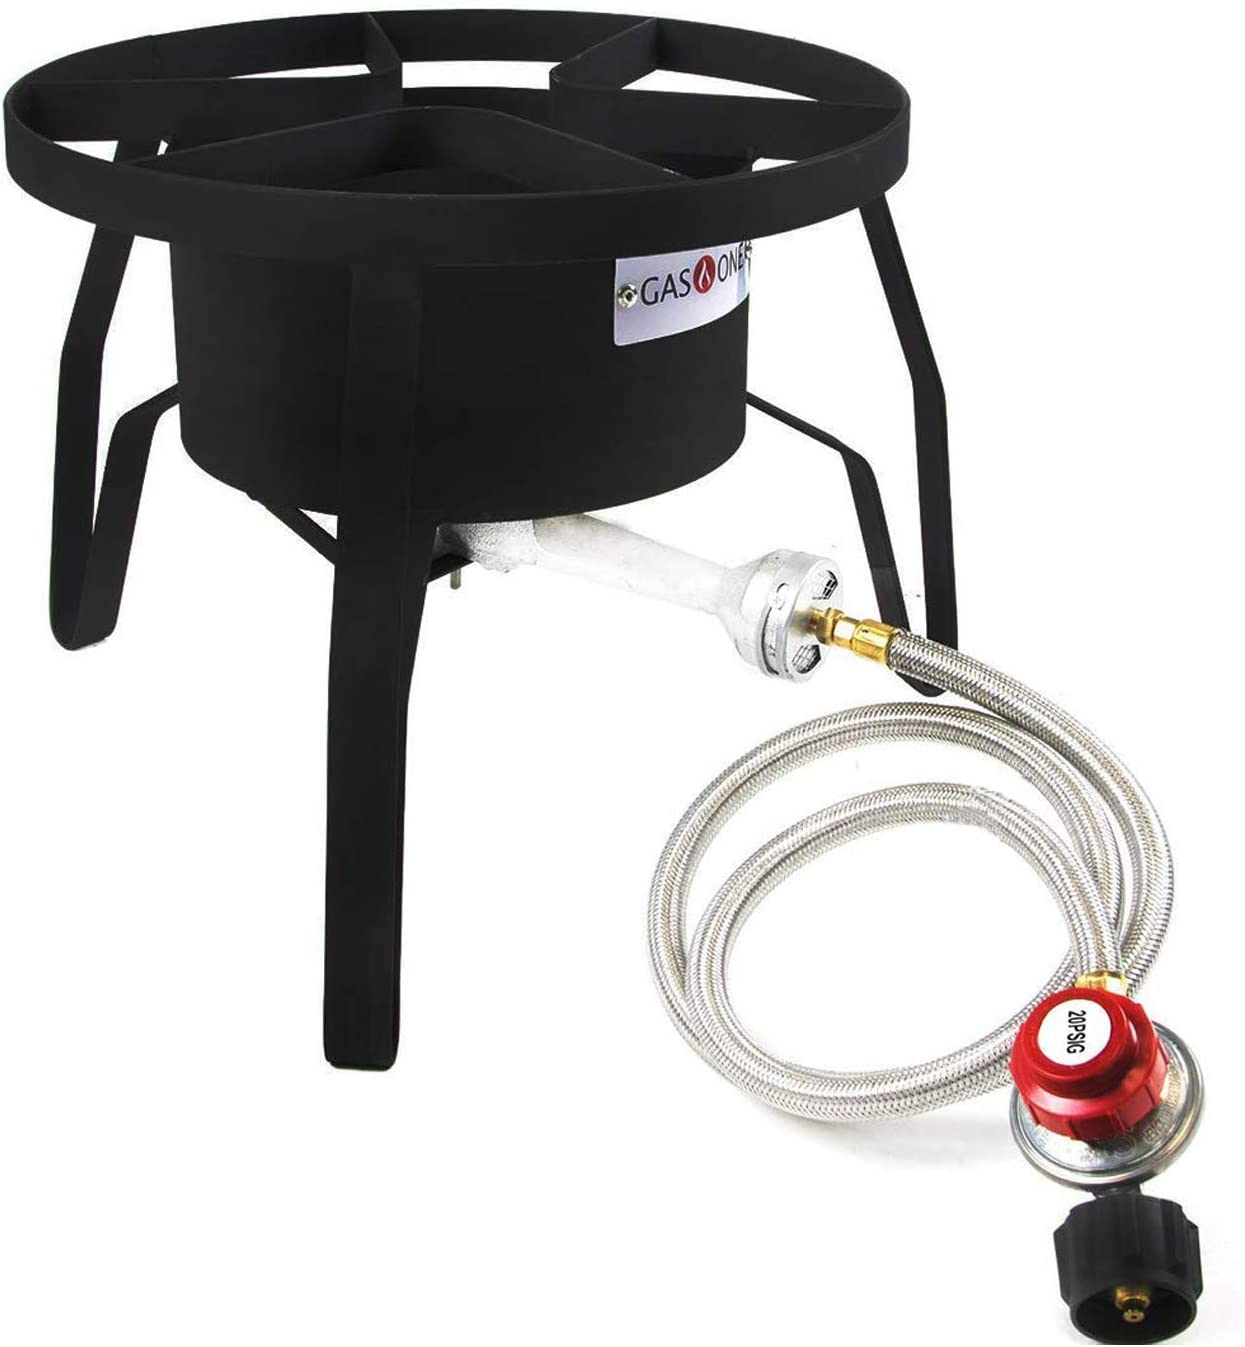 GasOne B-5300 One High-Pressure Outdoor Propane Burner Gas Cooker Weld, Black